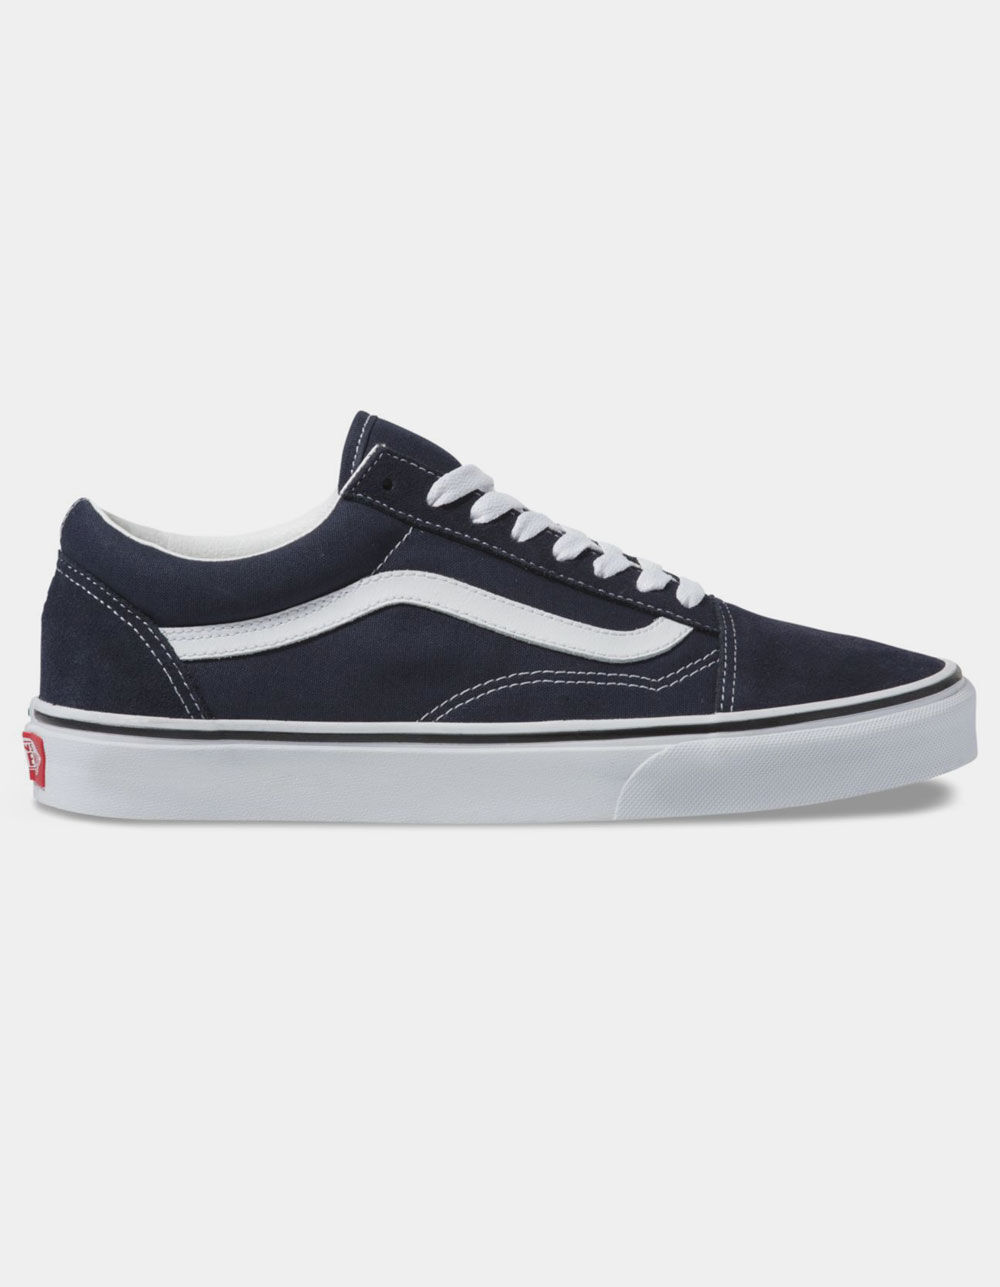 VANS Old Skool Night Sky & True White Shoes